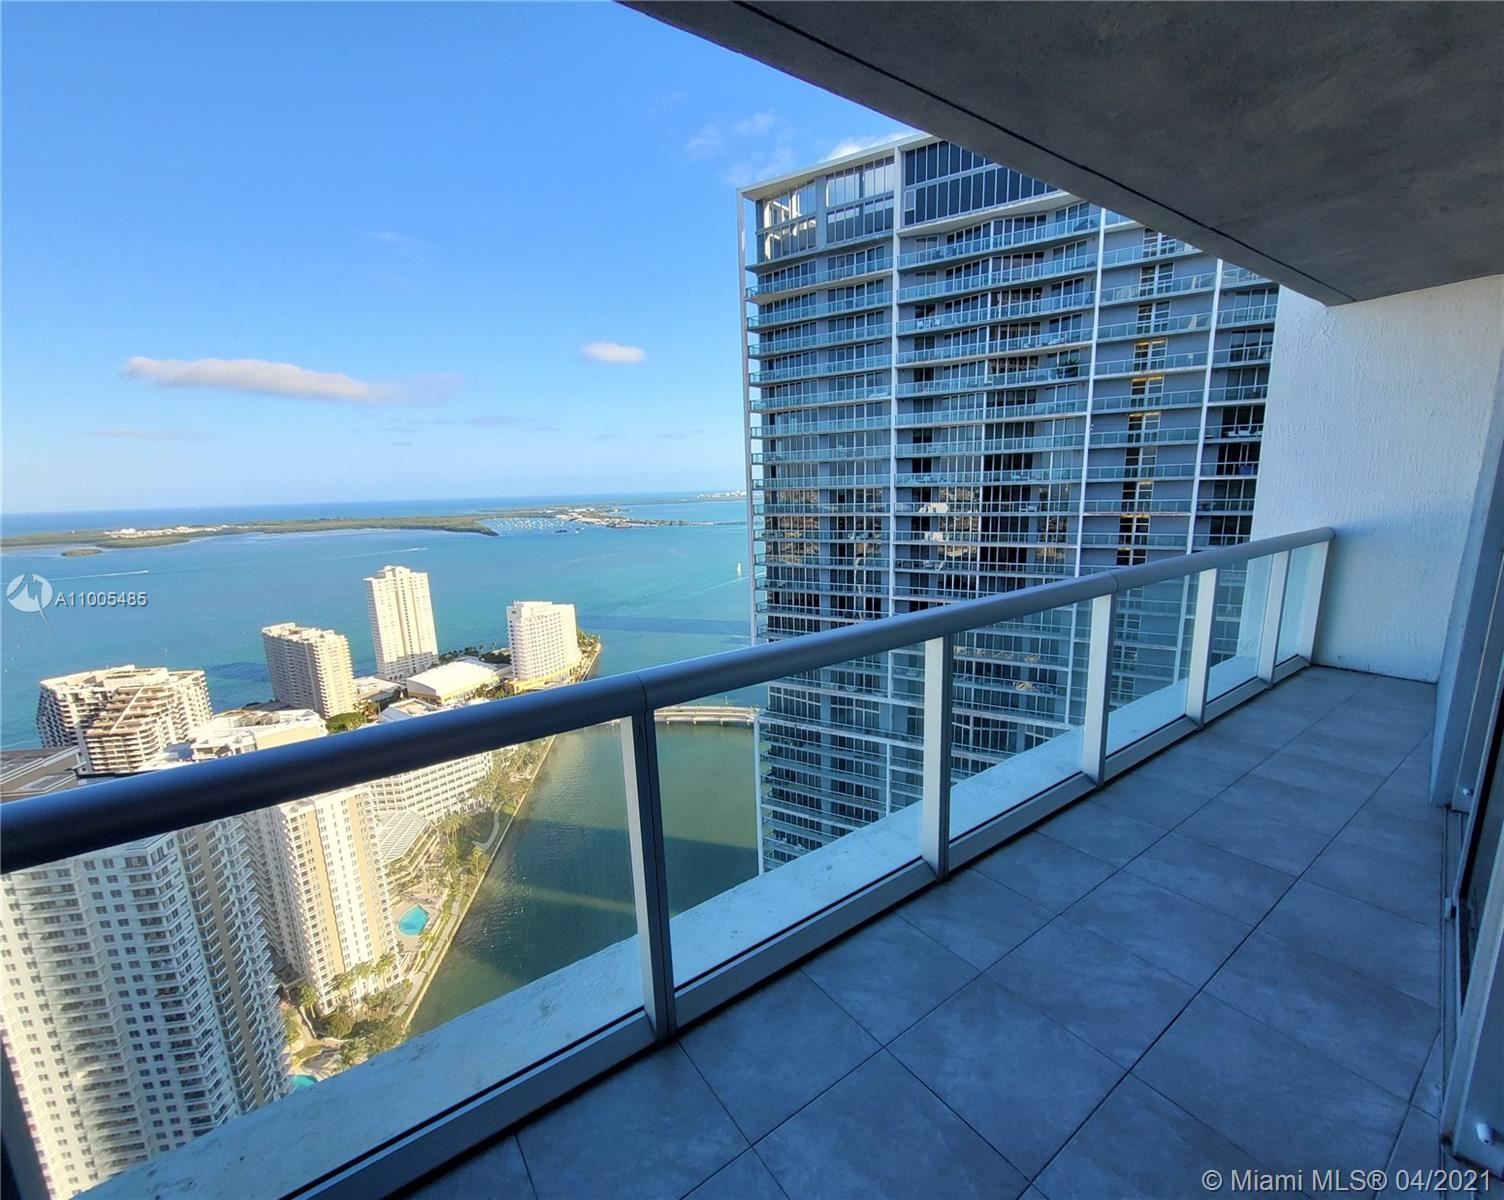 465 Brickell Ave #4905, Miami, FL 33131 - #: A11005485